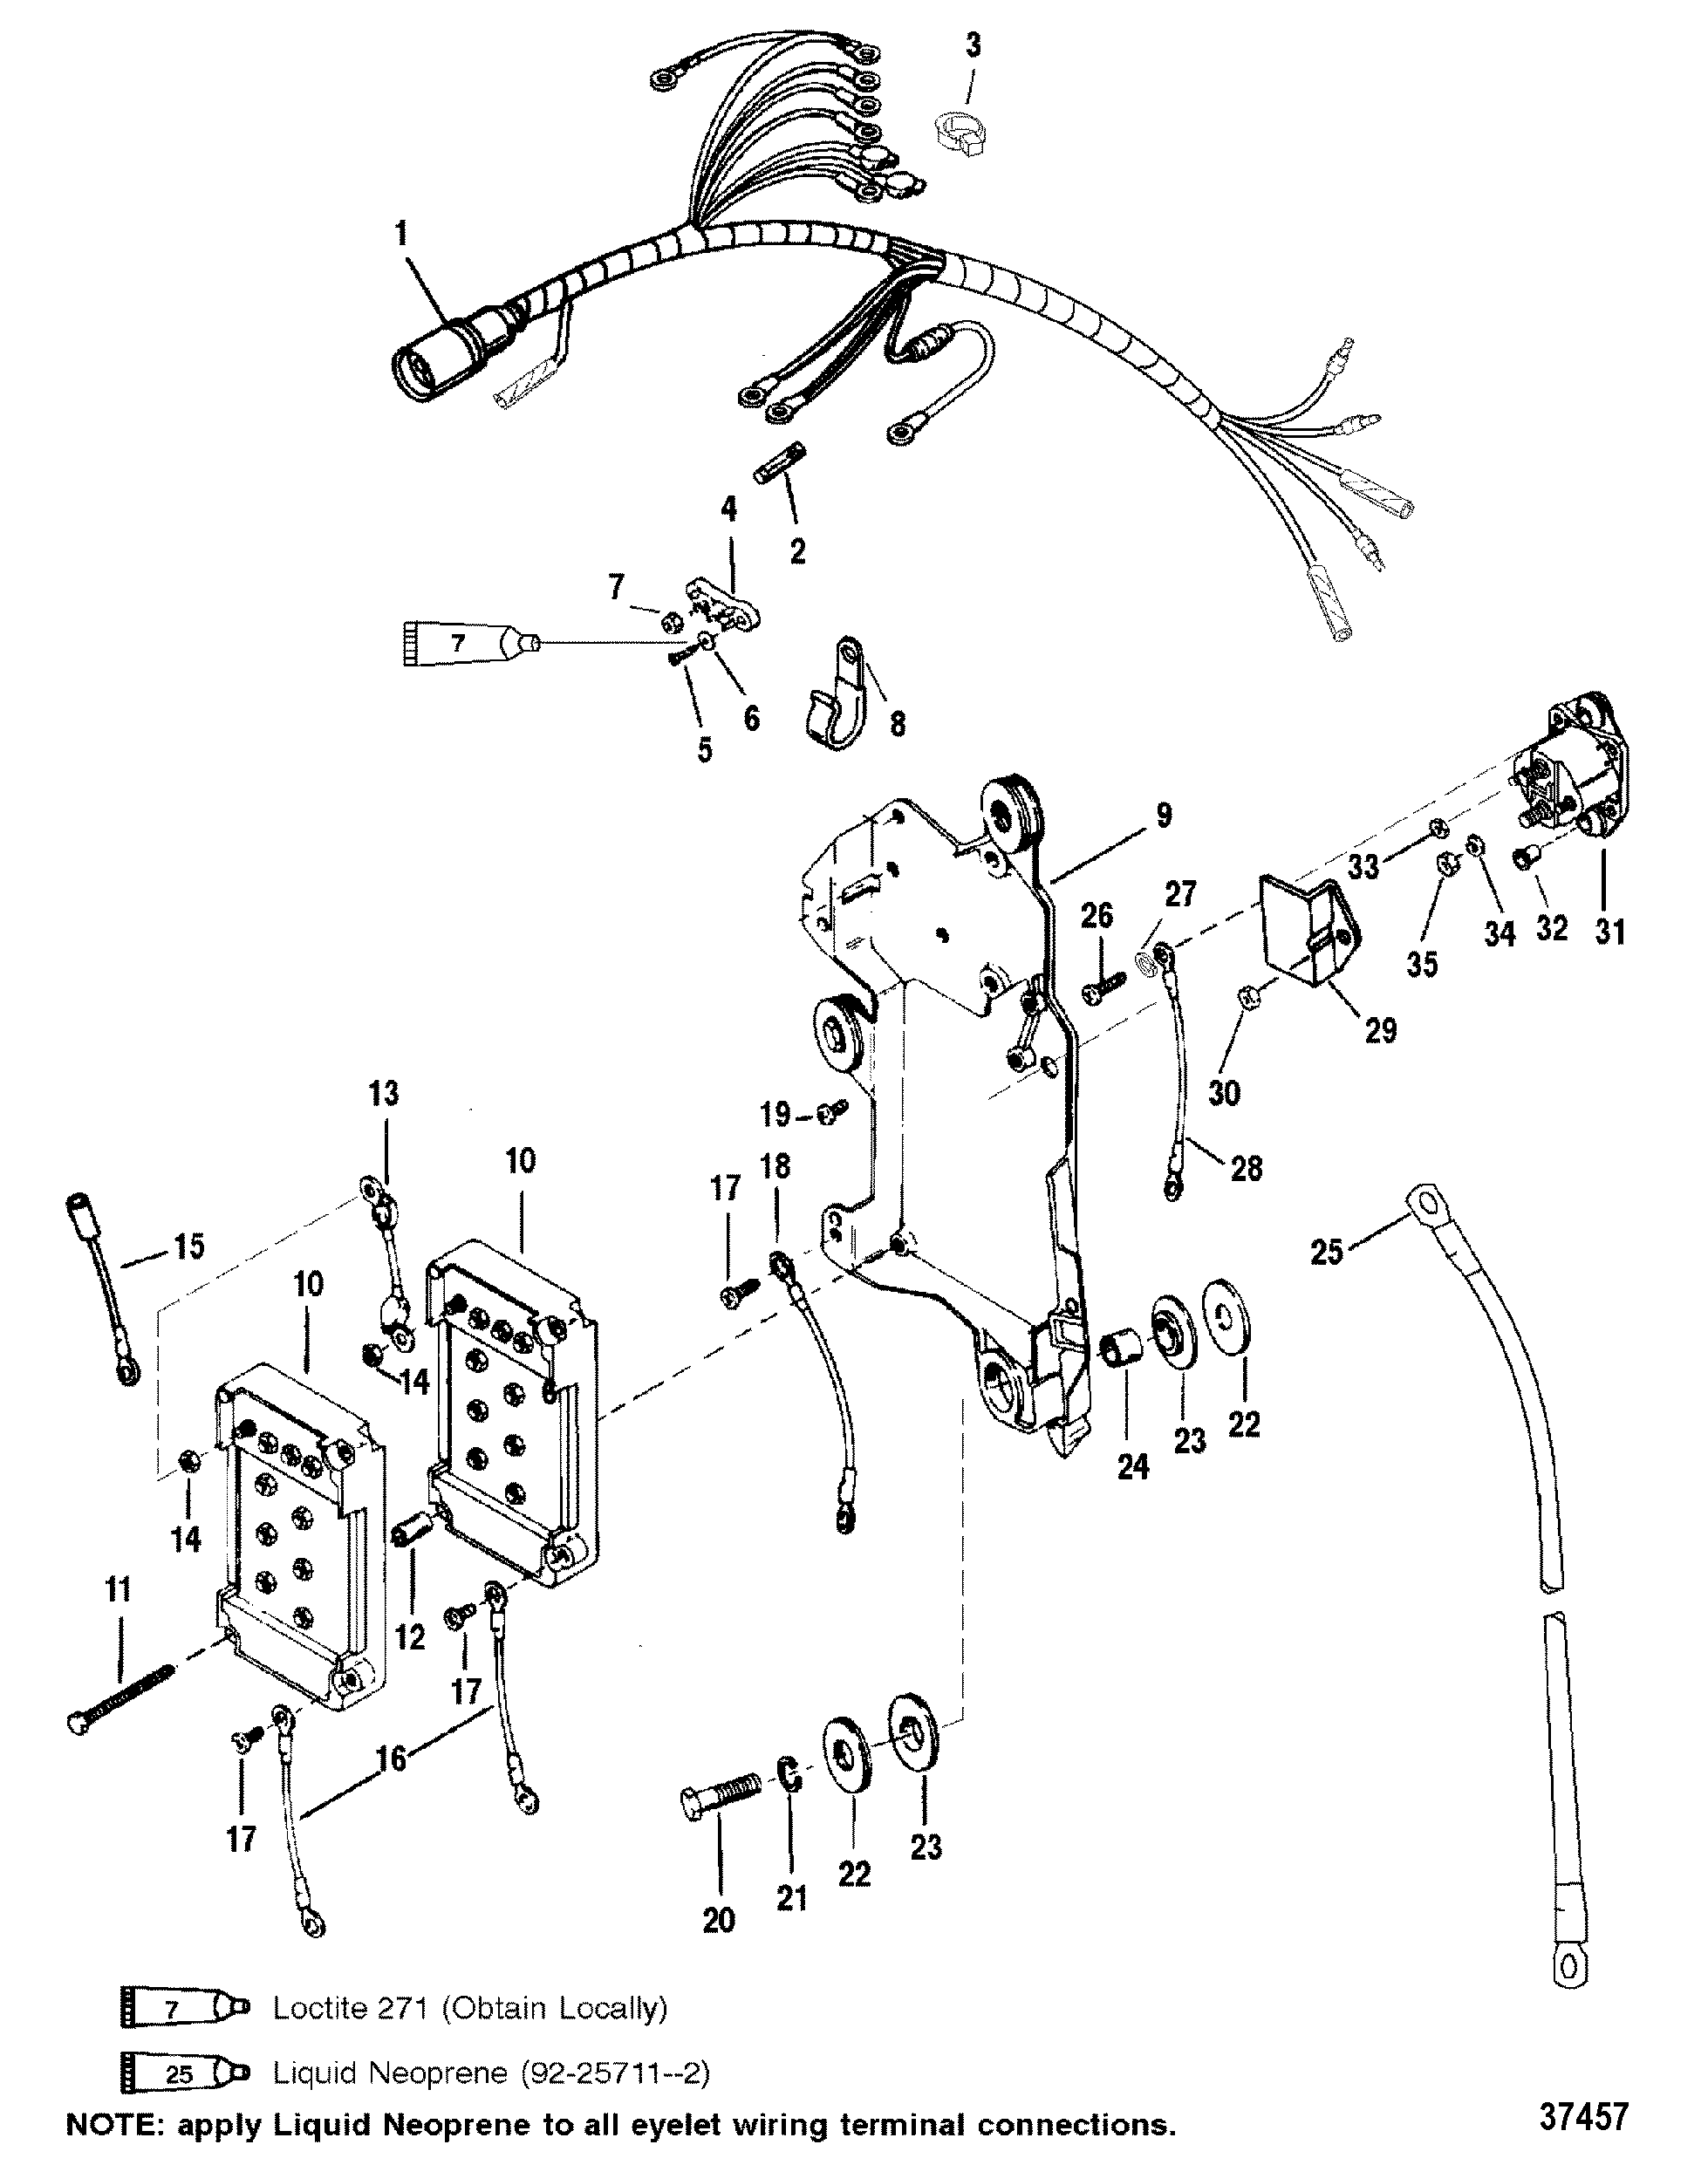 37457 wiring harness starter solenoid for mariner mercury 150 175 200 efi mercury 14 pin wiring harness diagram at gsmportal.co